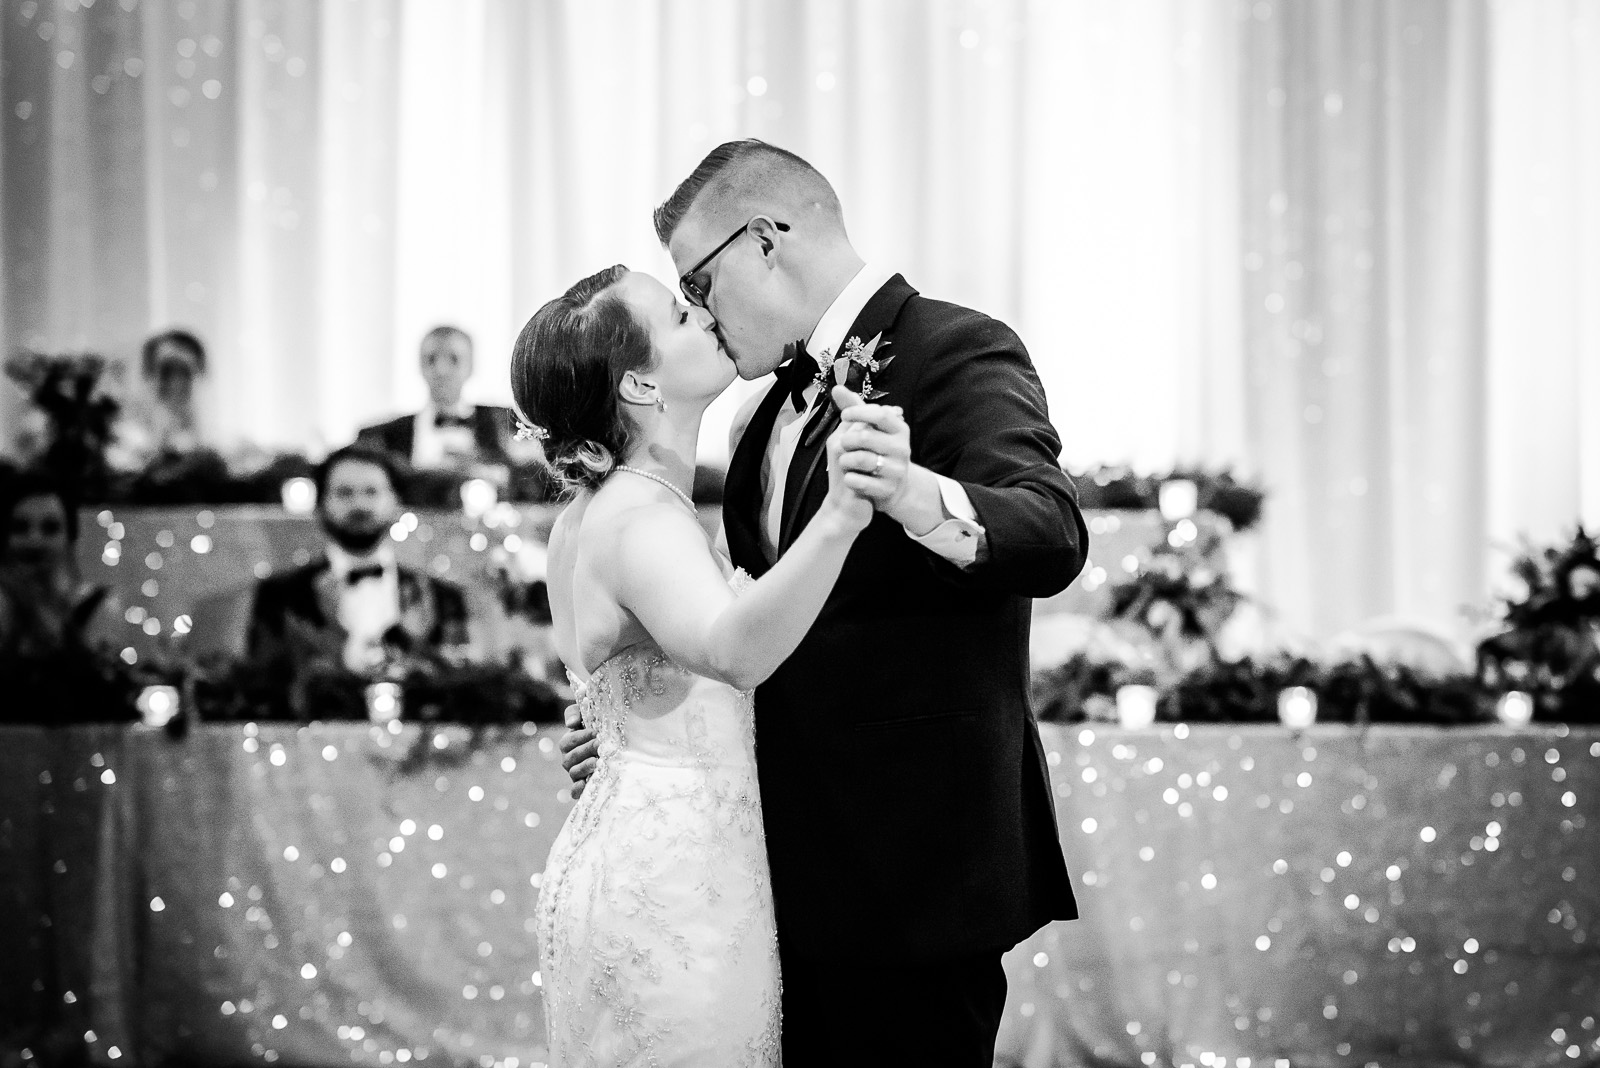 Eric_and_Christy_Photography_Blog_Wedding_Erica_Mike-74